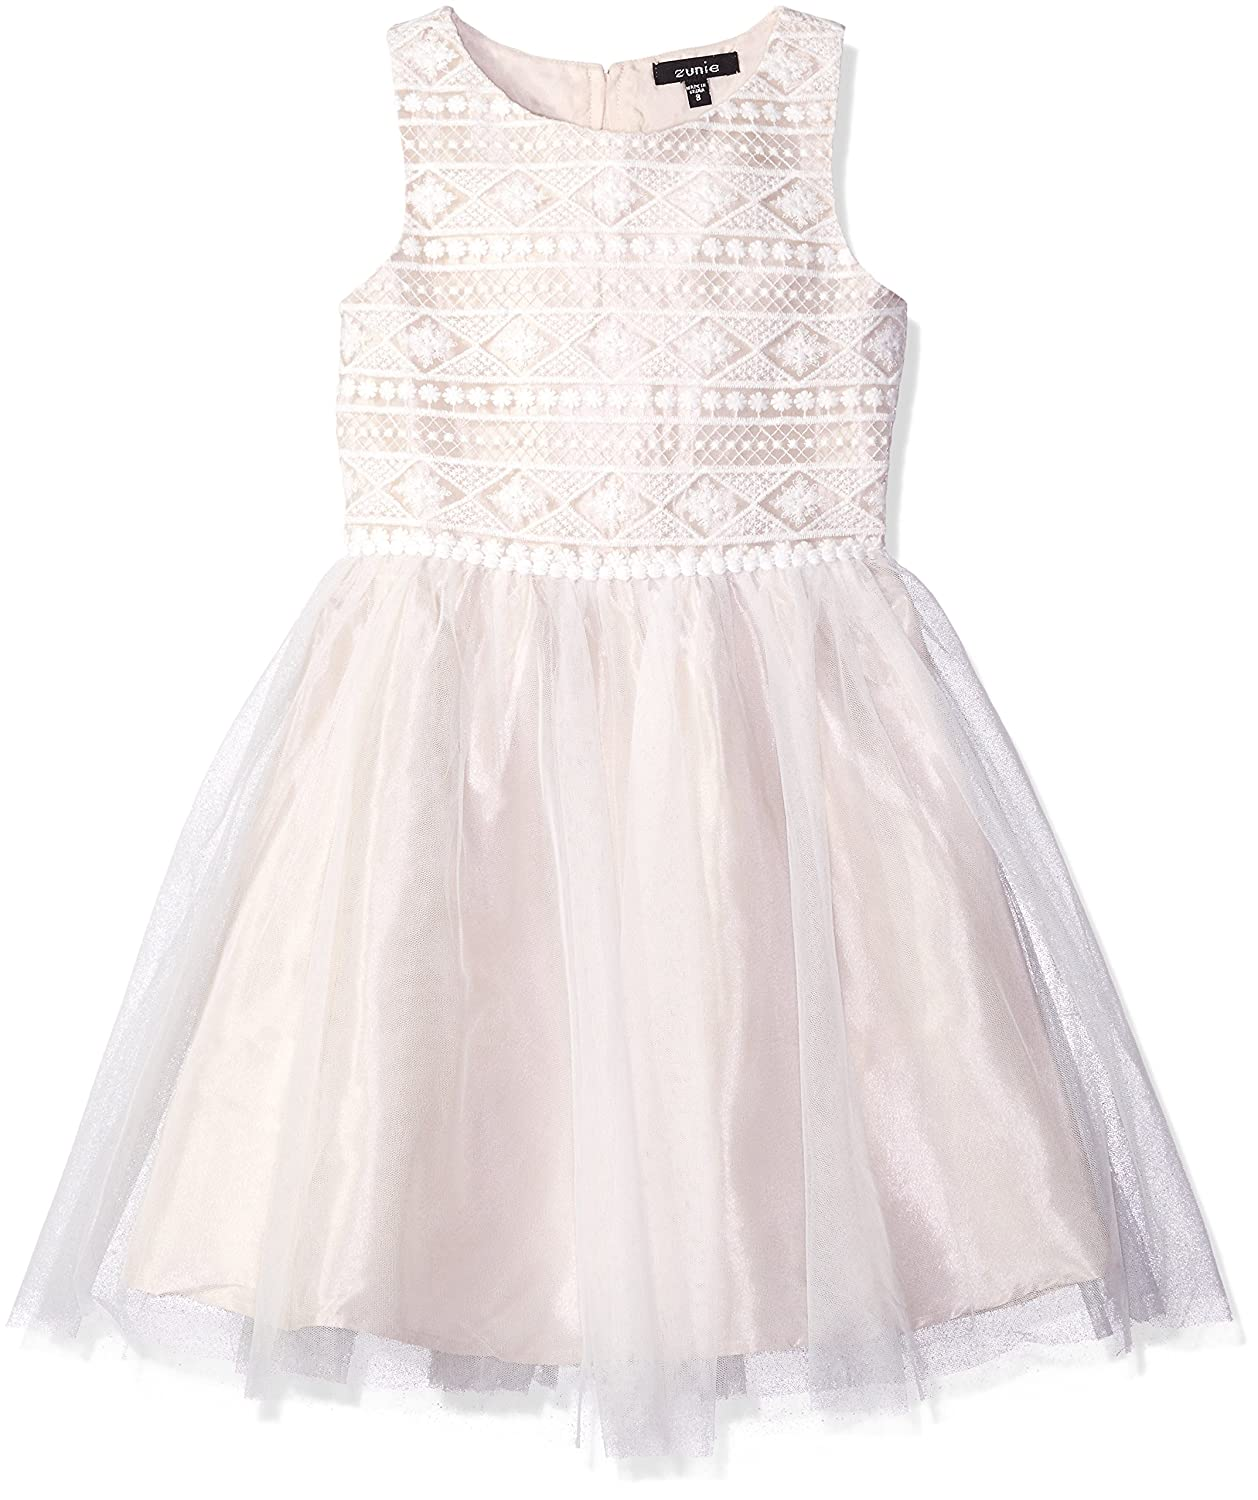 a4edc54484 Amazon.com  ZUNIE Girls  Big Sleeveless Embroidered Ballerina Dress   Clothing